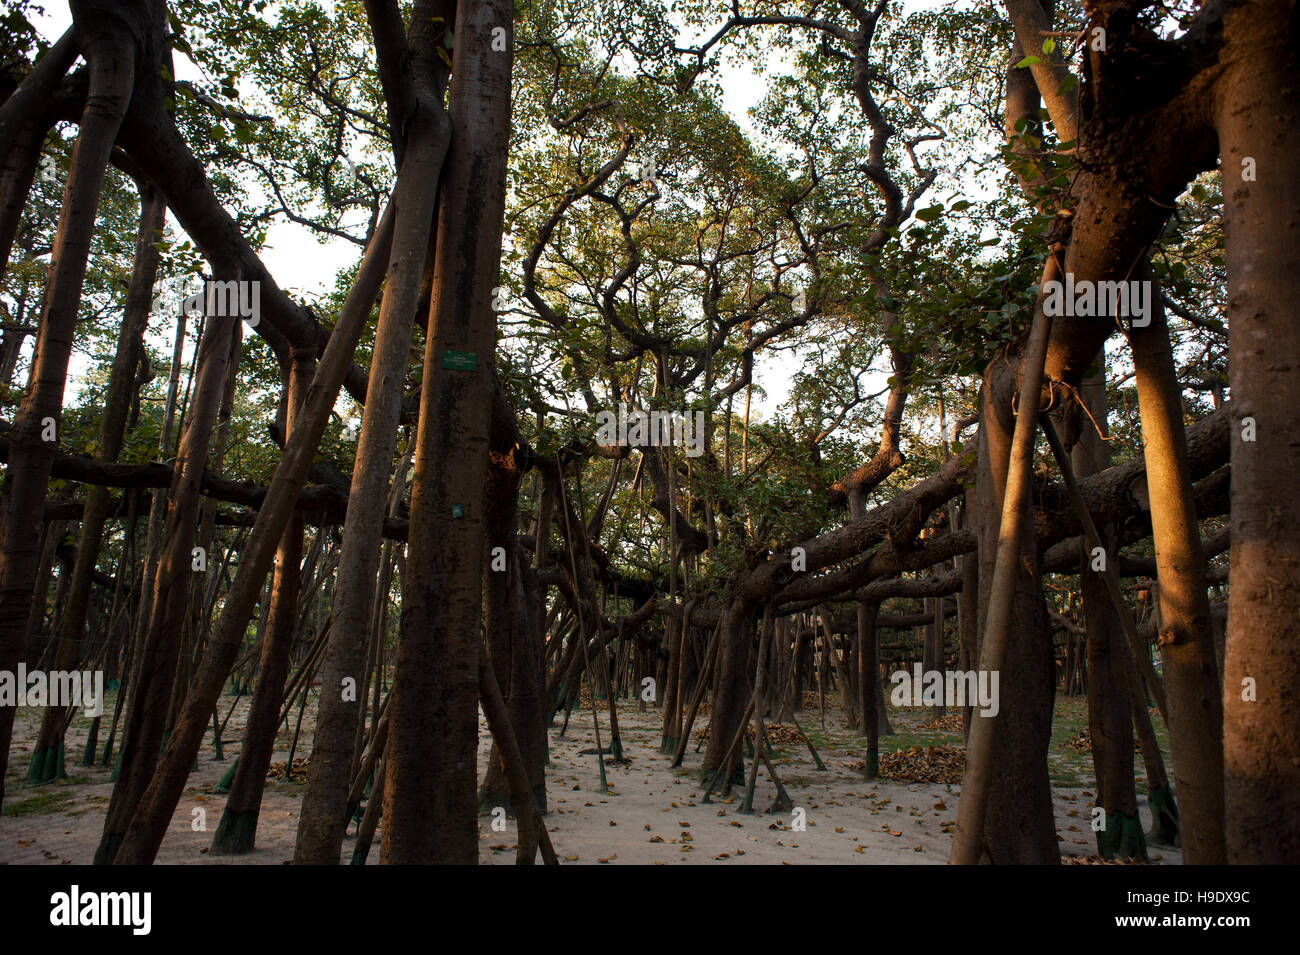 Thought to be 250 years old, the Great Banyan is a tree growing in Howrah, Calcutta, that has the widest canopy - Stock Image